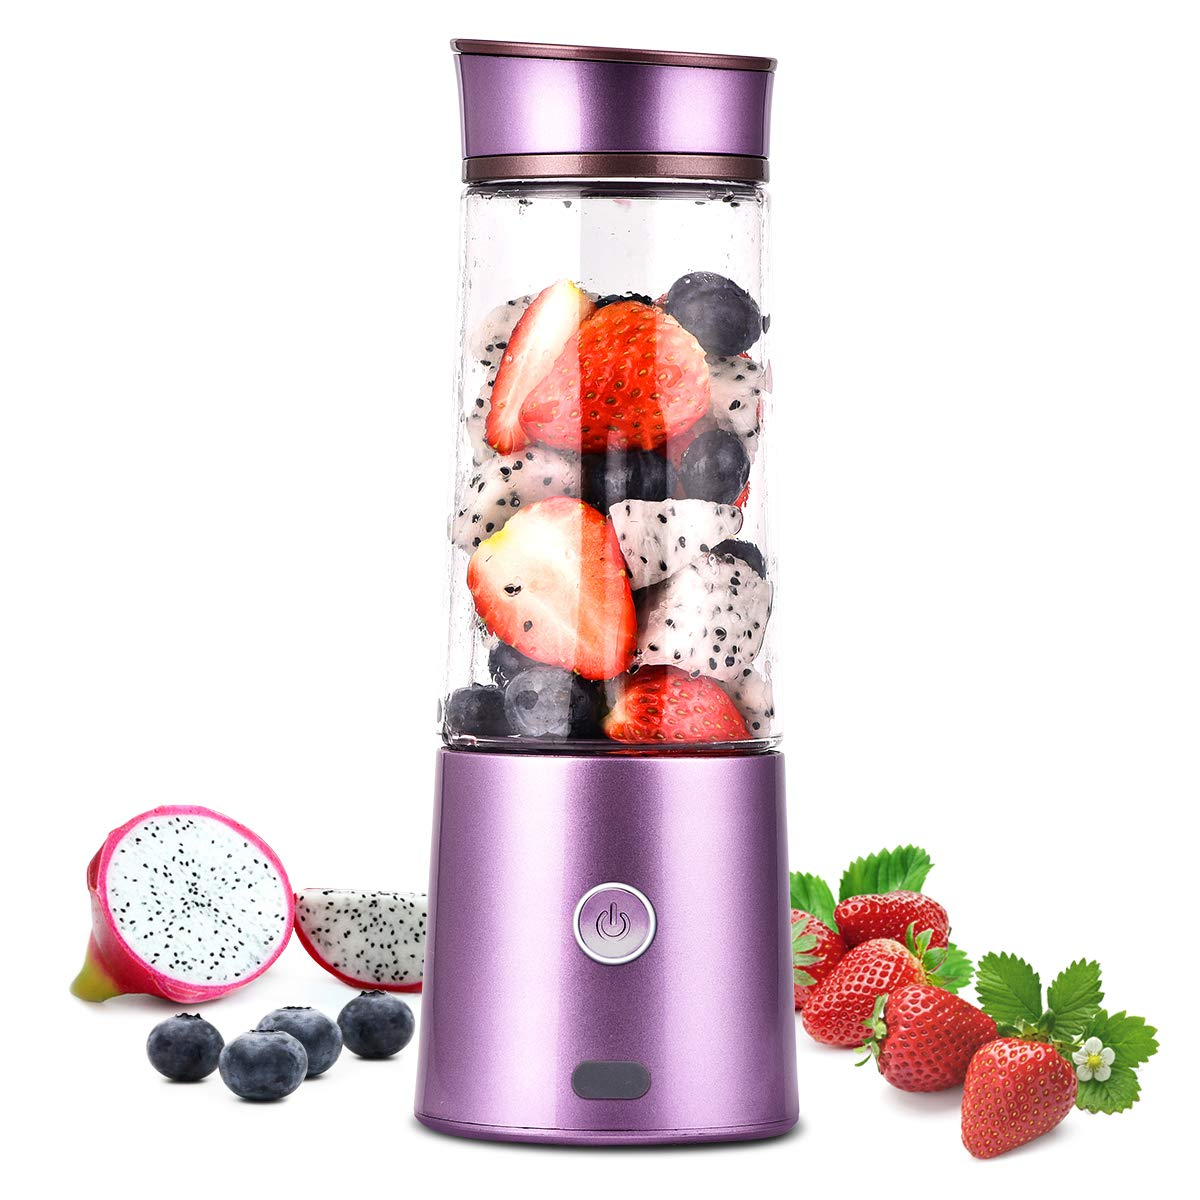 Kacsoo Portable Smoothie Blender, M650 USB Blender for Shakes and Smoothies, Fruit Mixer Juicer Cup, Multifunctional Single Serve Personal Travel Blender, with 5200 mAh Rechargeable Battery, FDA BPA Fre (Purple)